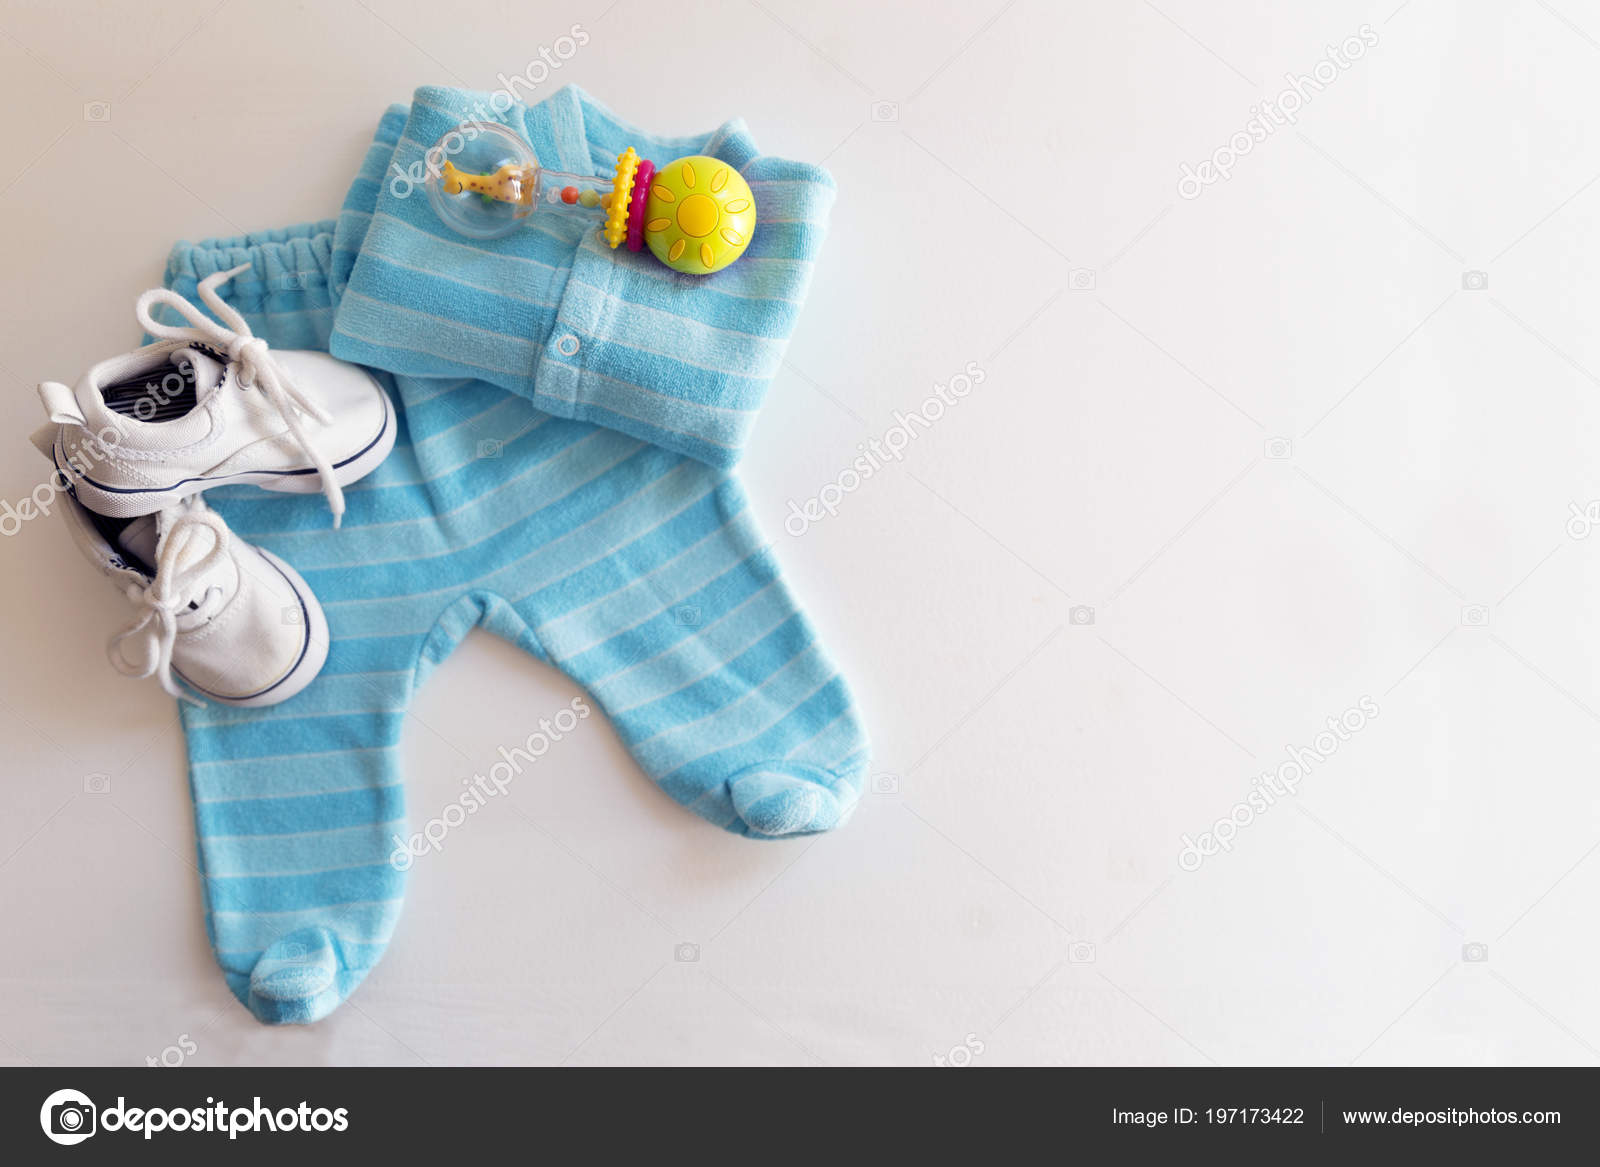 baby stuff white background things little boy rattle shoes